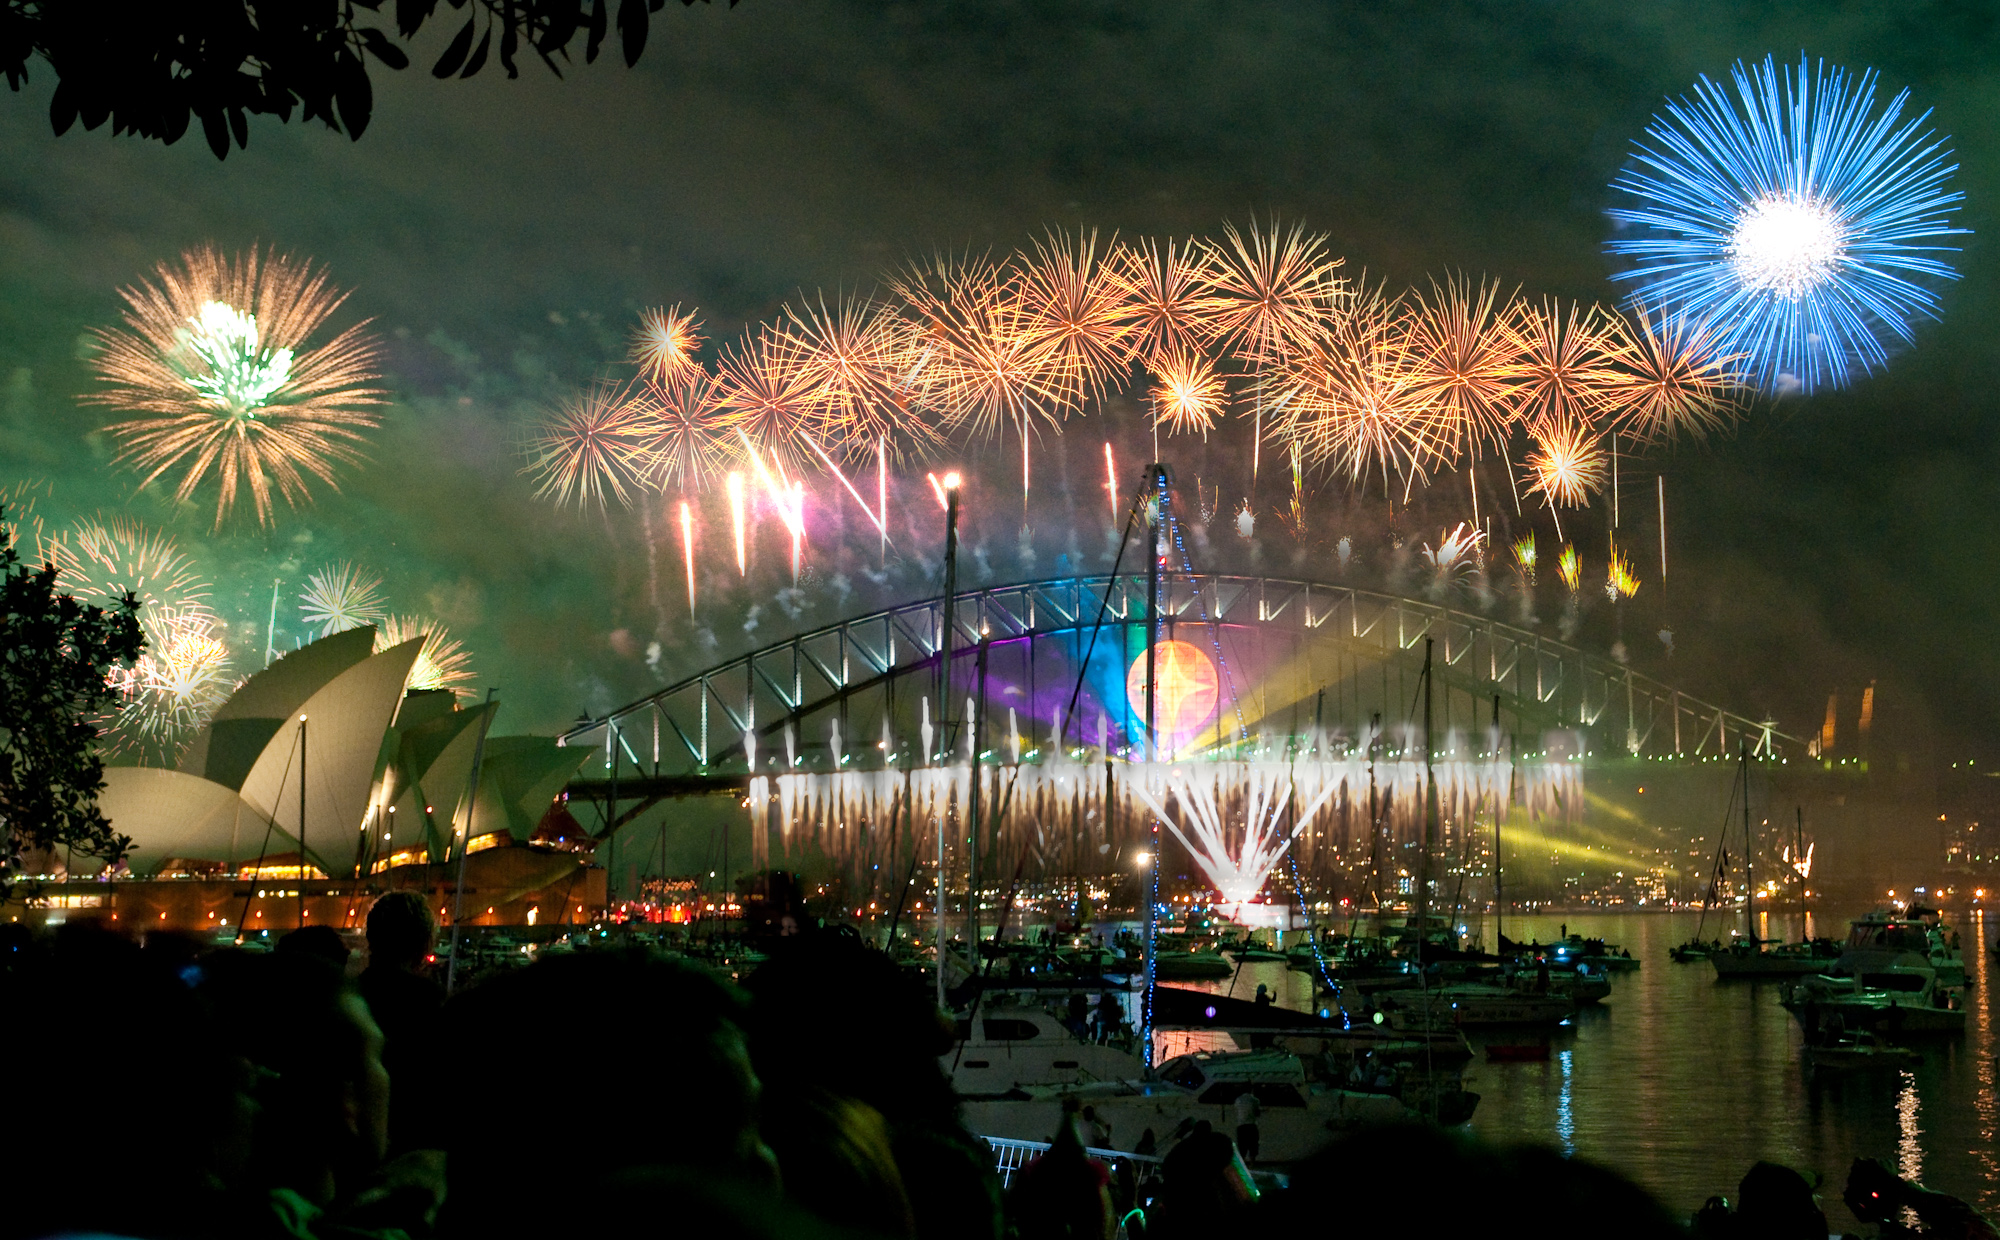 Fireworks in Sydney By Linh_rOm (https://www.flickr.com/photos/linh_rom/3356798888/) [CC-BY-2.0 (https://creativecommons.org/licenses/by/2.0)], via Wikimedia Commons